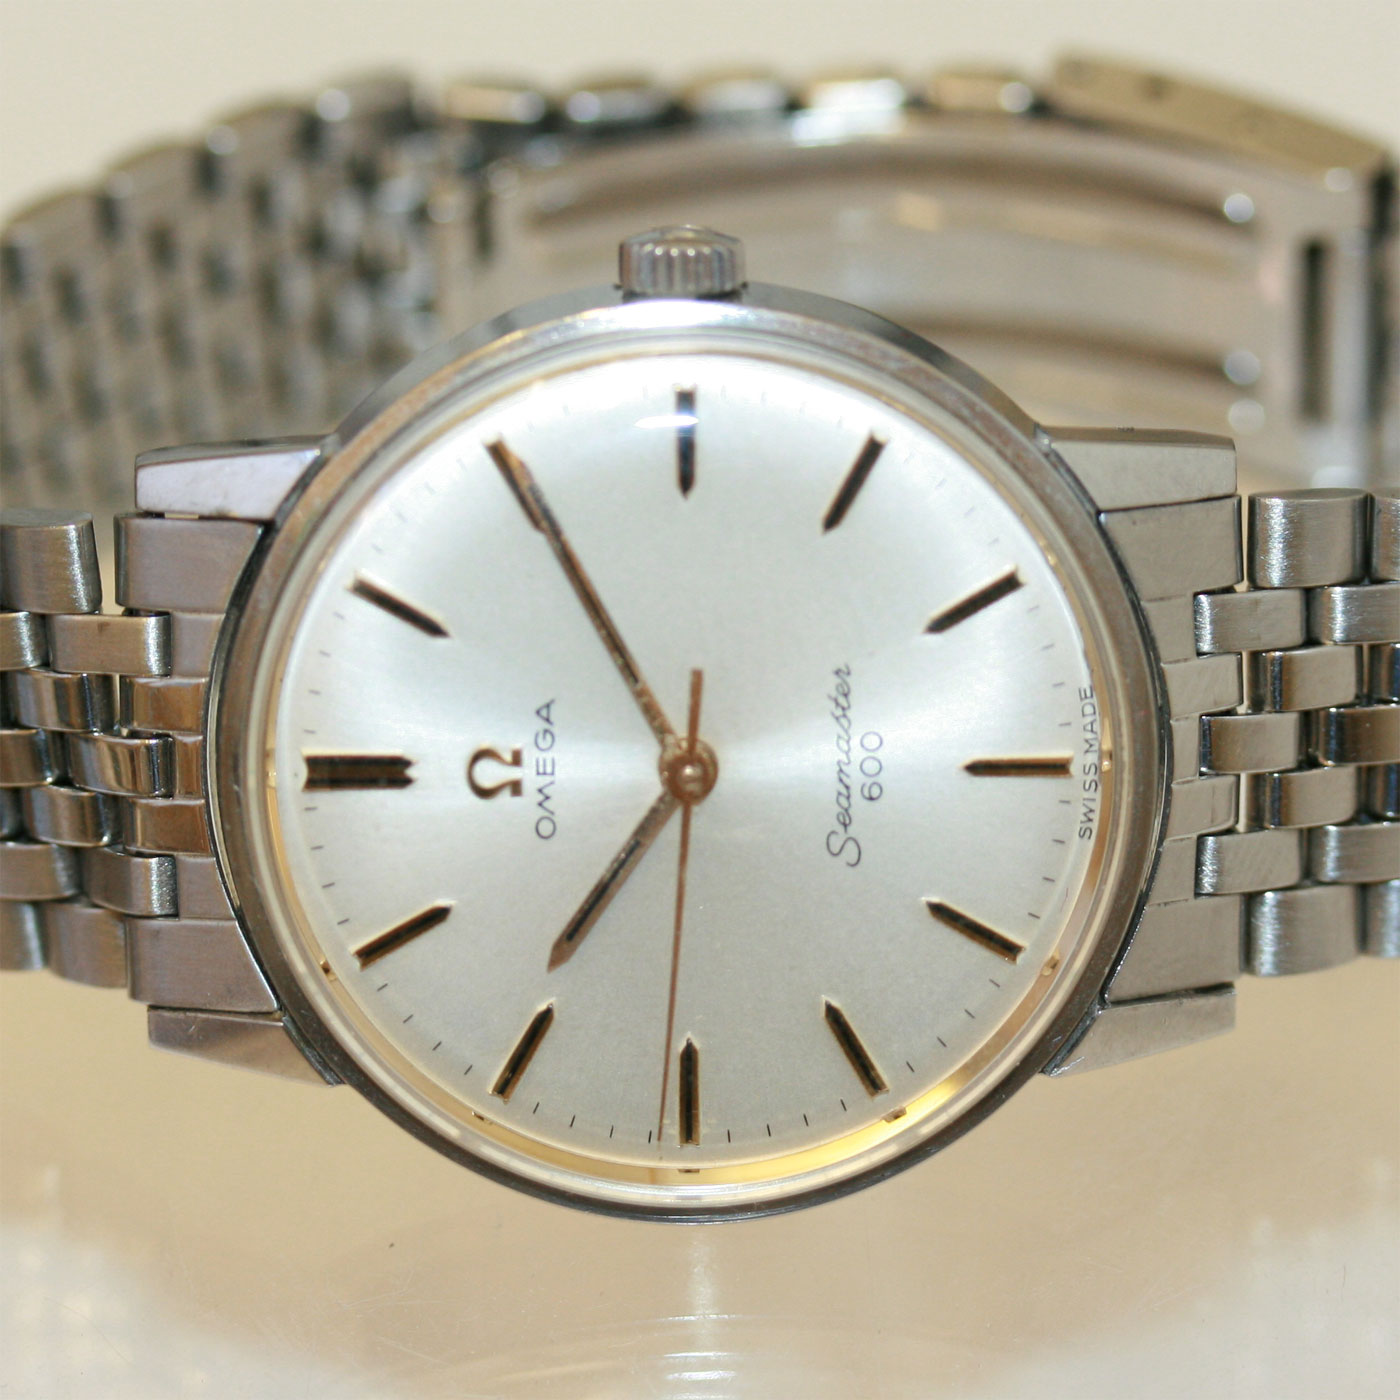 76d9985bb0c3d Buy Vintage Omega watch. Sold Items